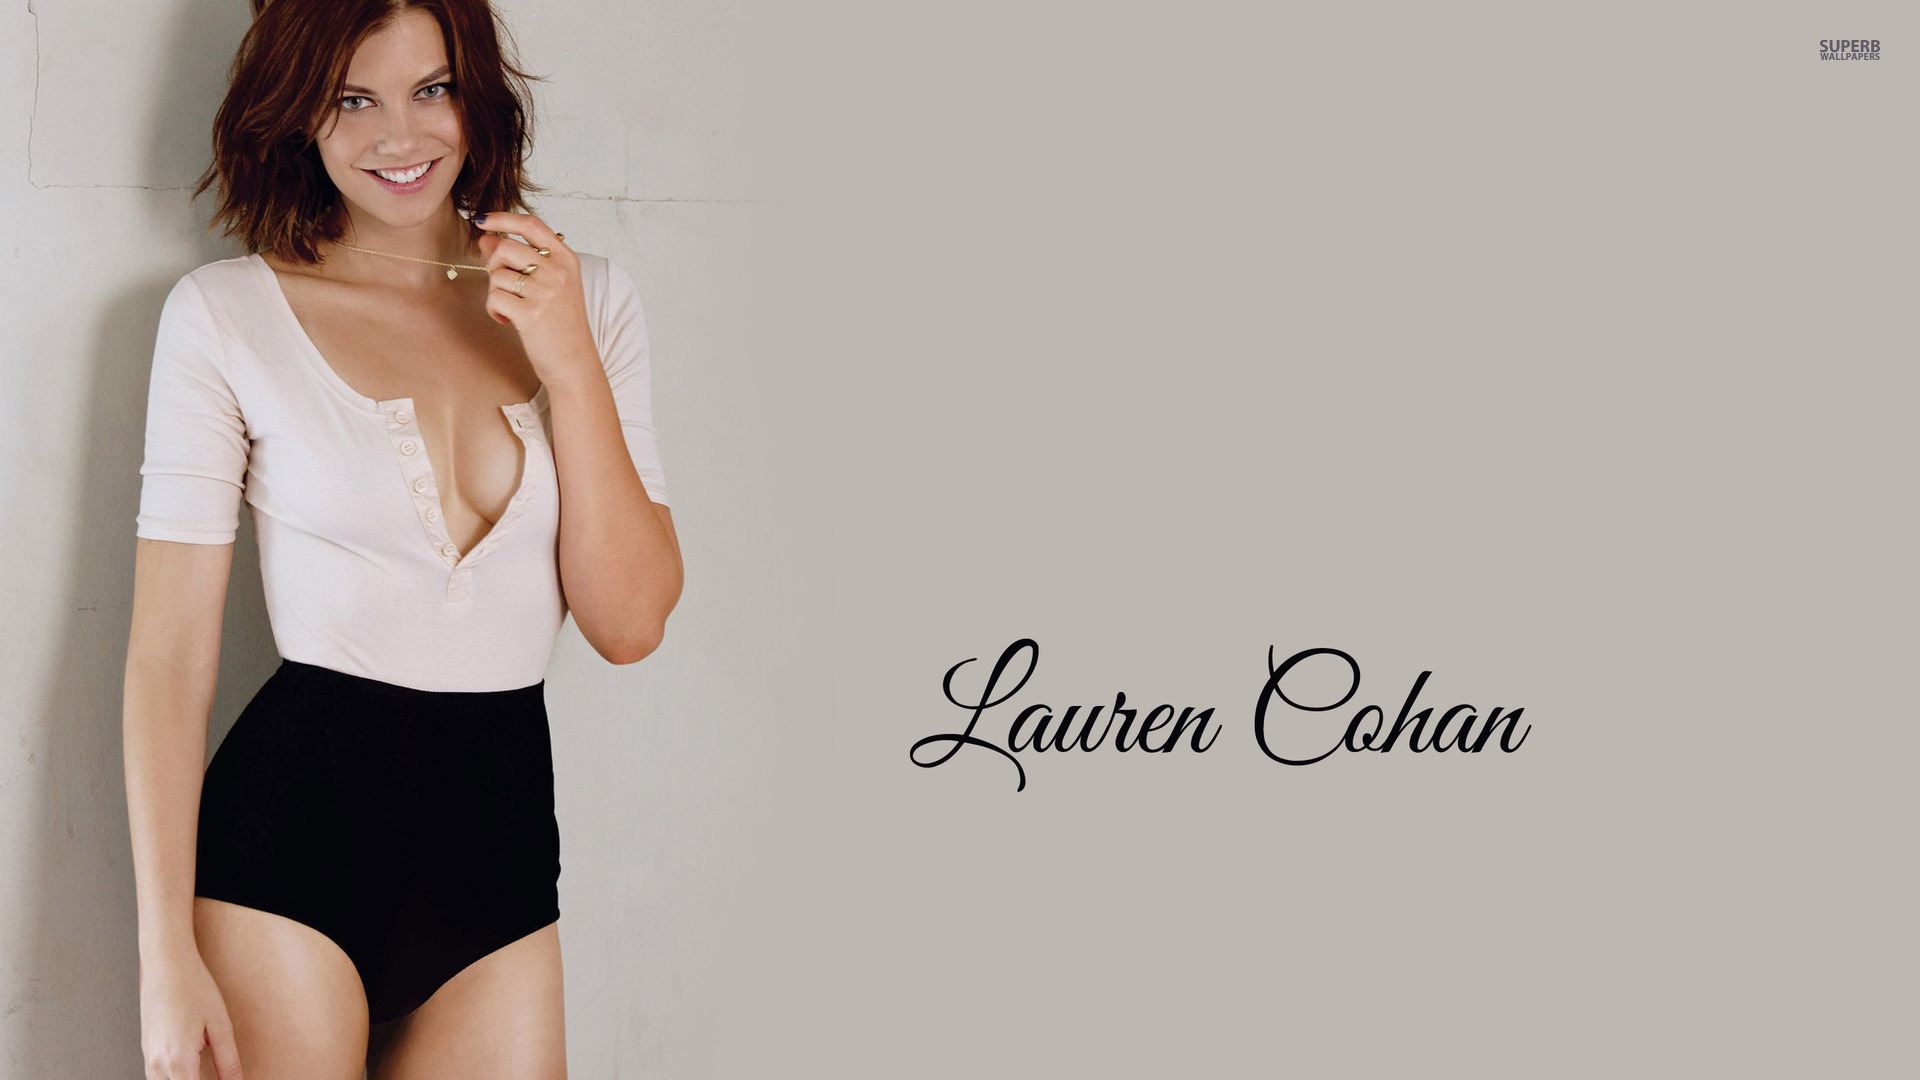 Lauren Cohan Wallpapers High Quality Download Free